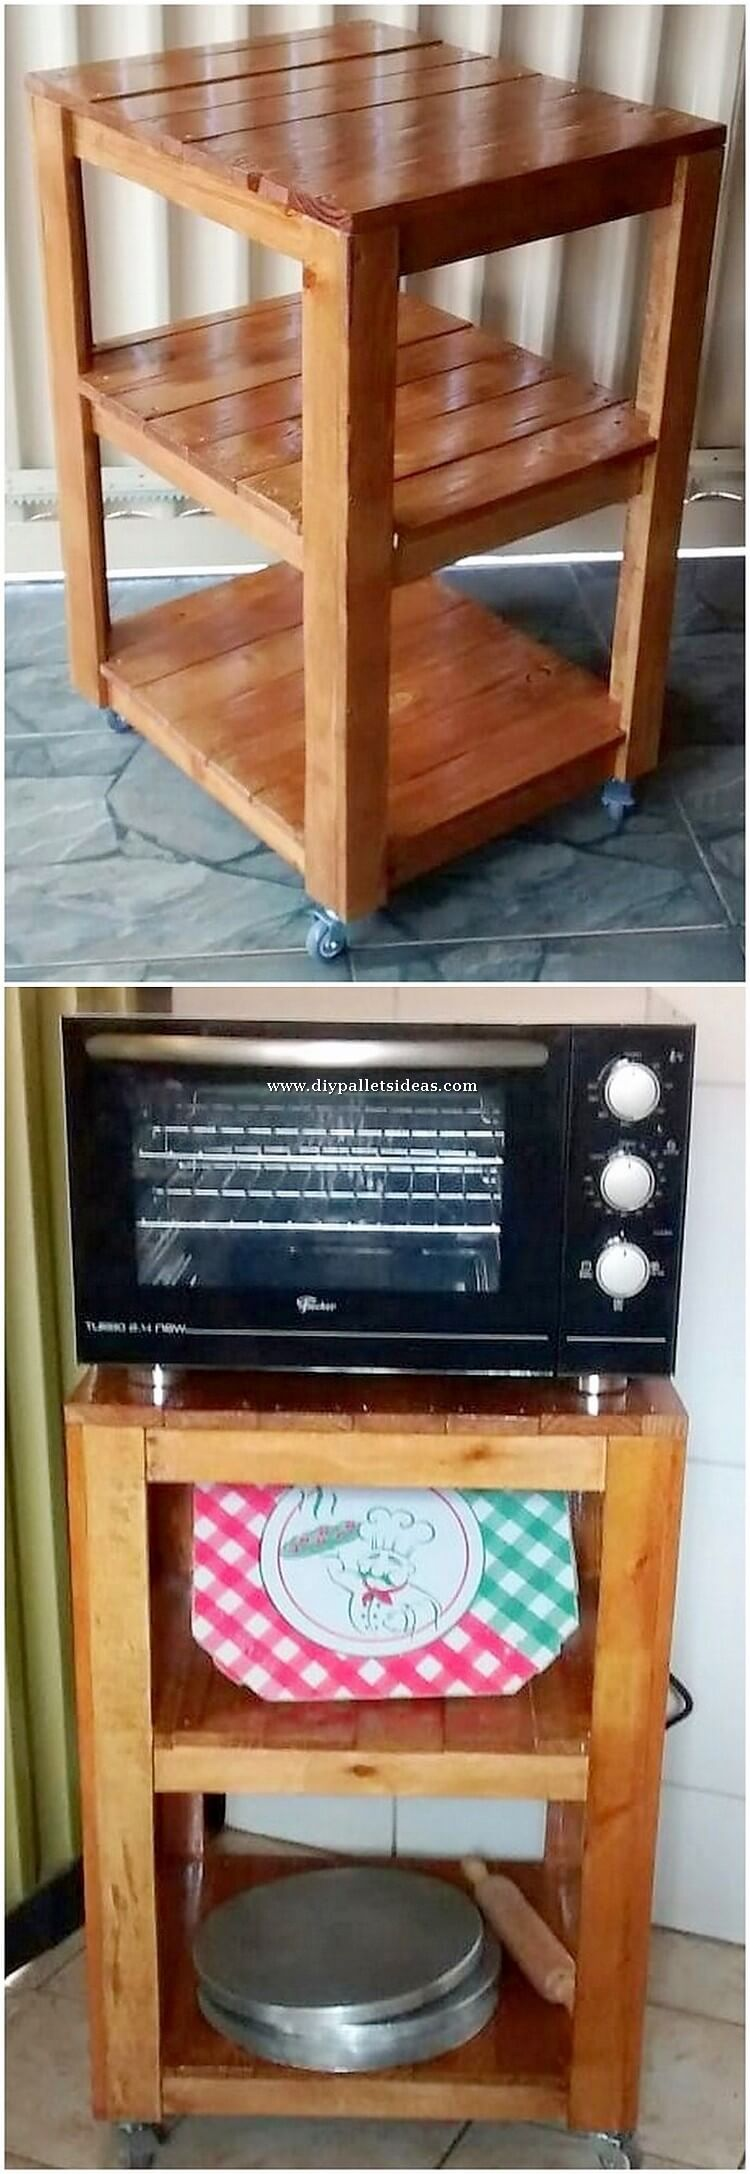 Pallet Oven Stand or Table